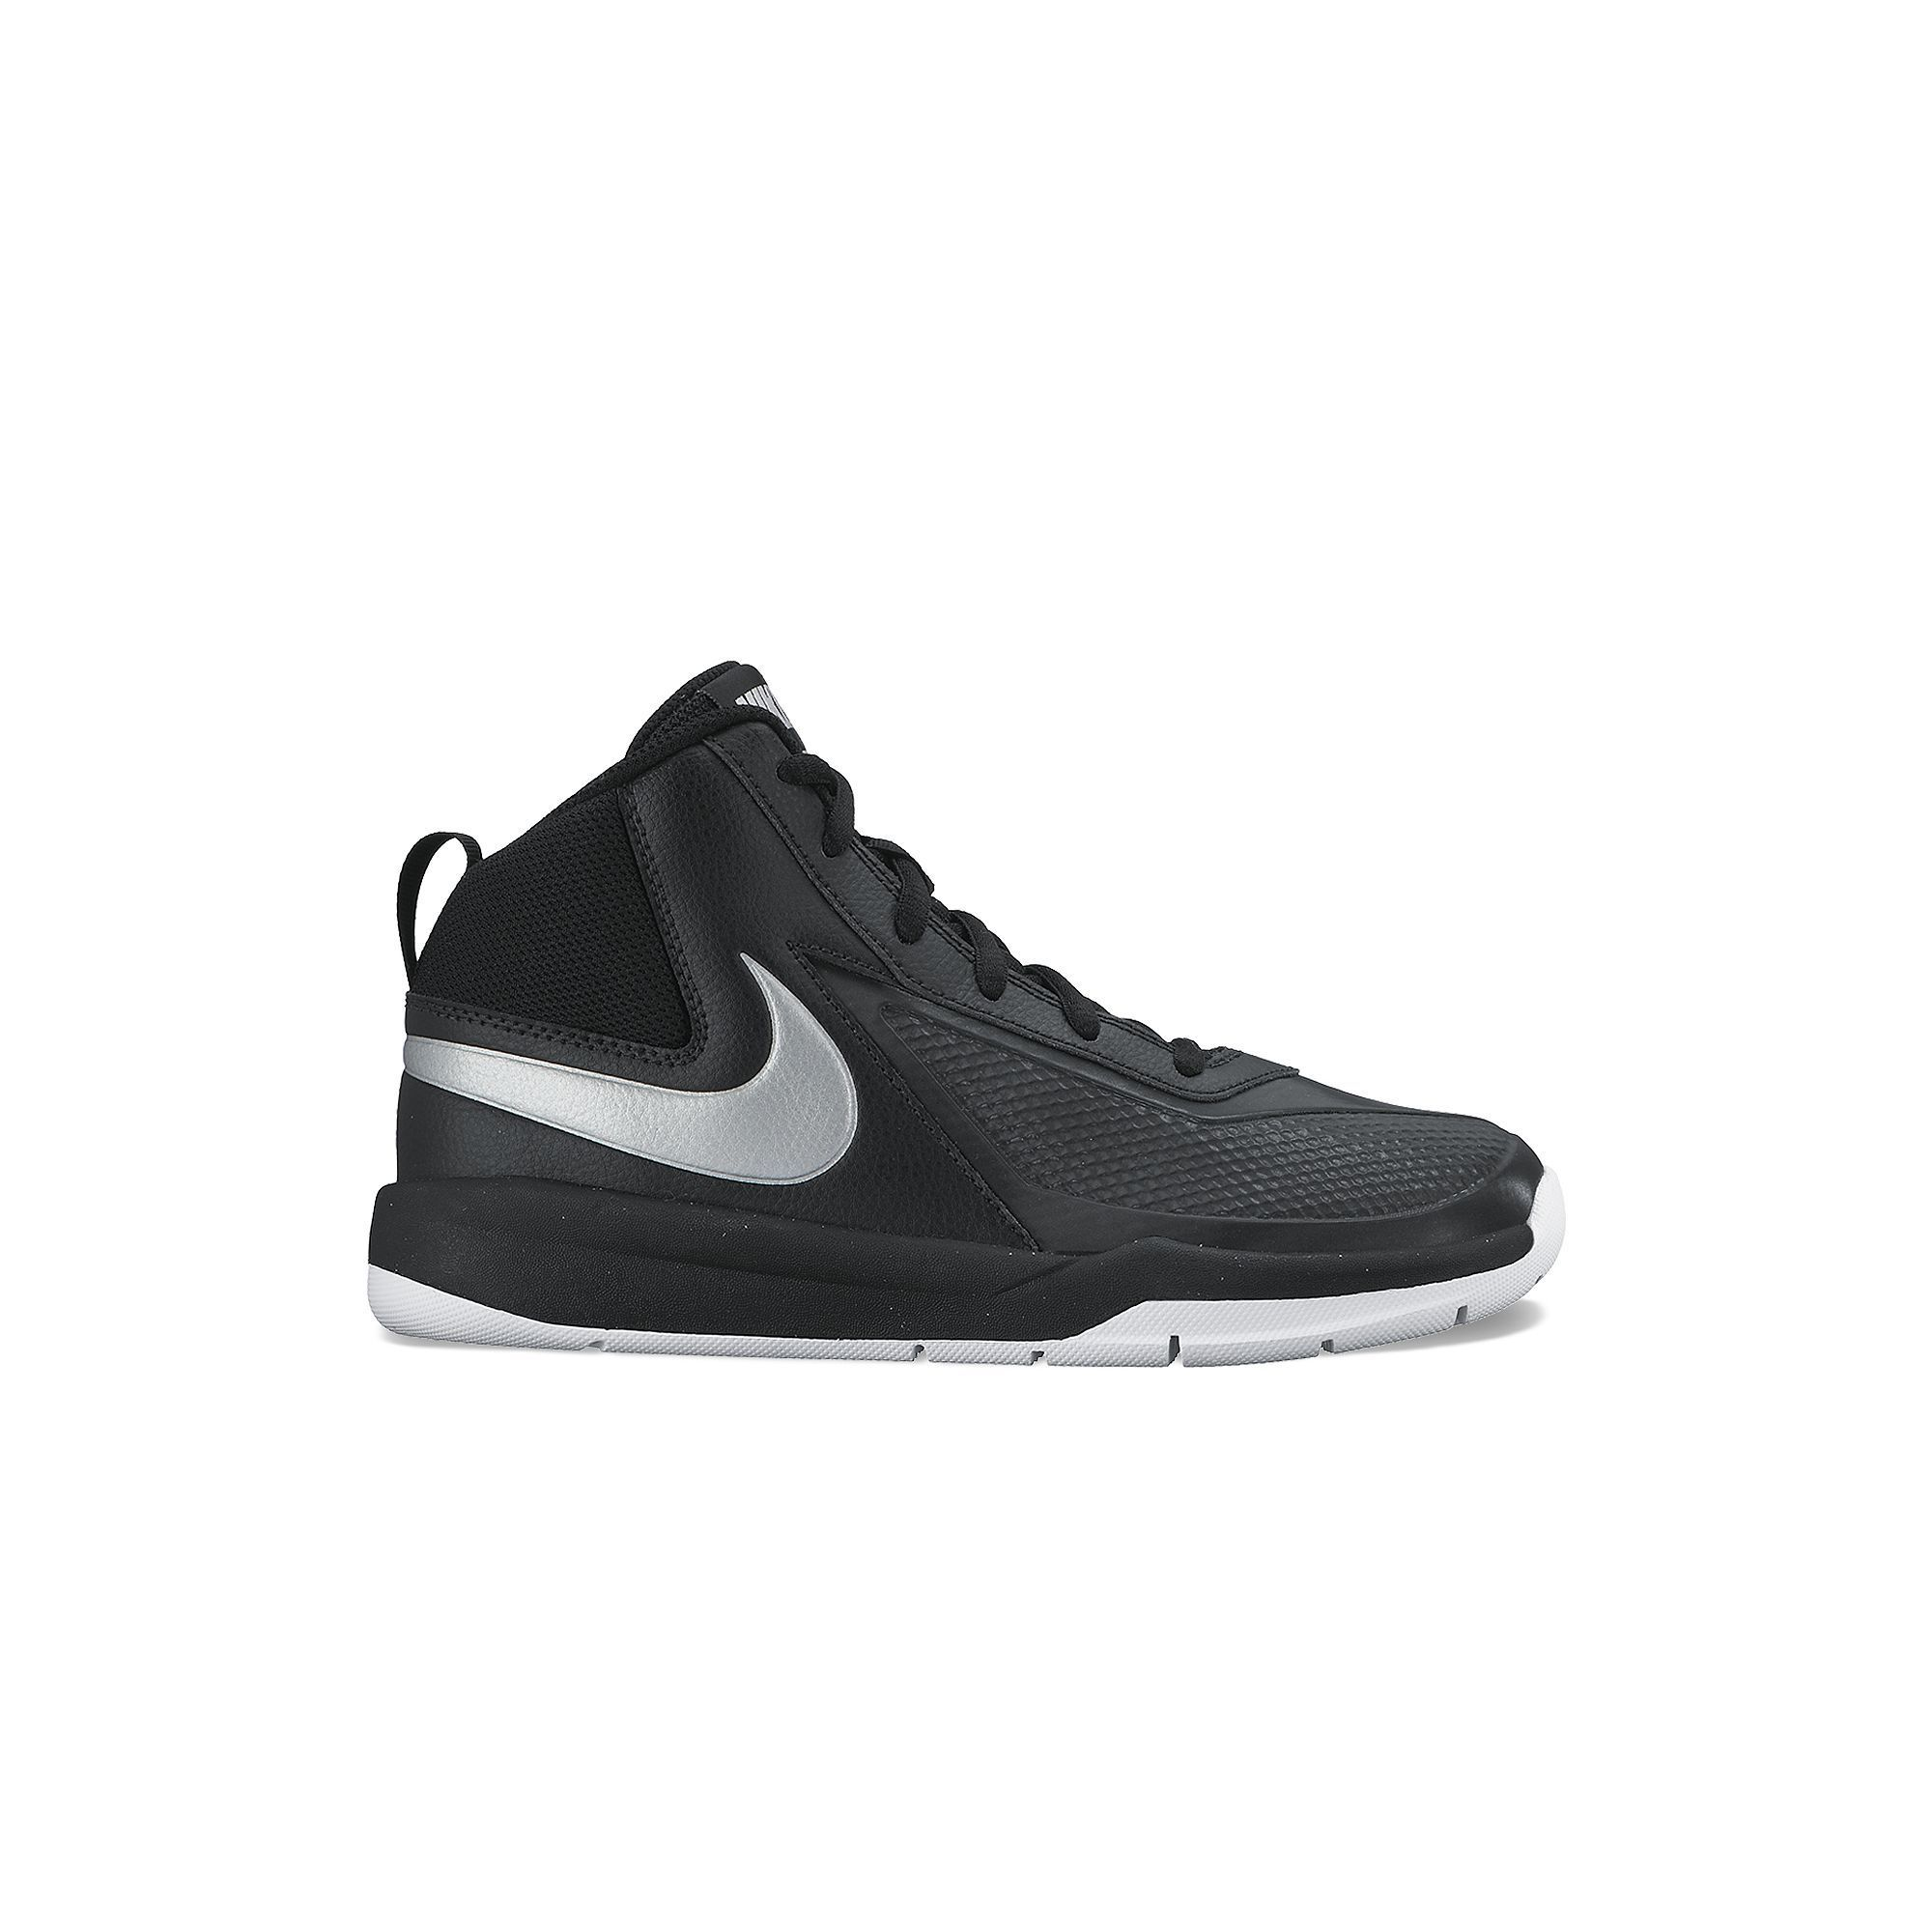 Nike Synthetic Black Grey White Team Hustle D7 Youth